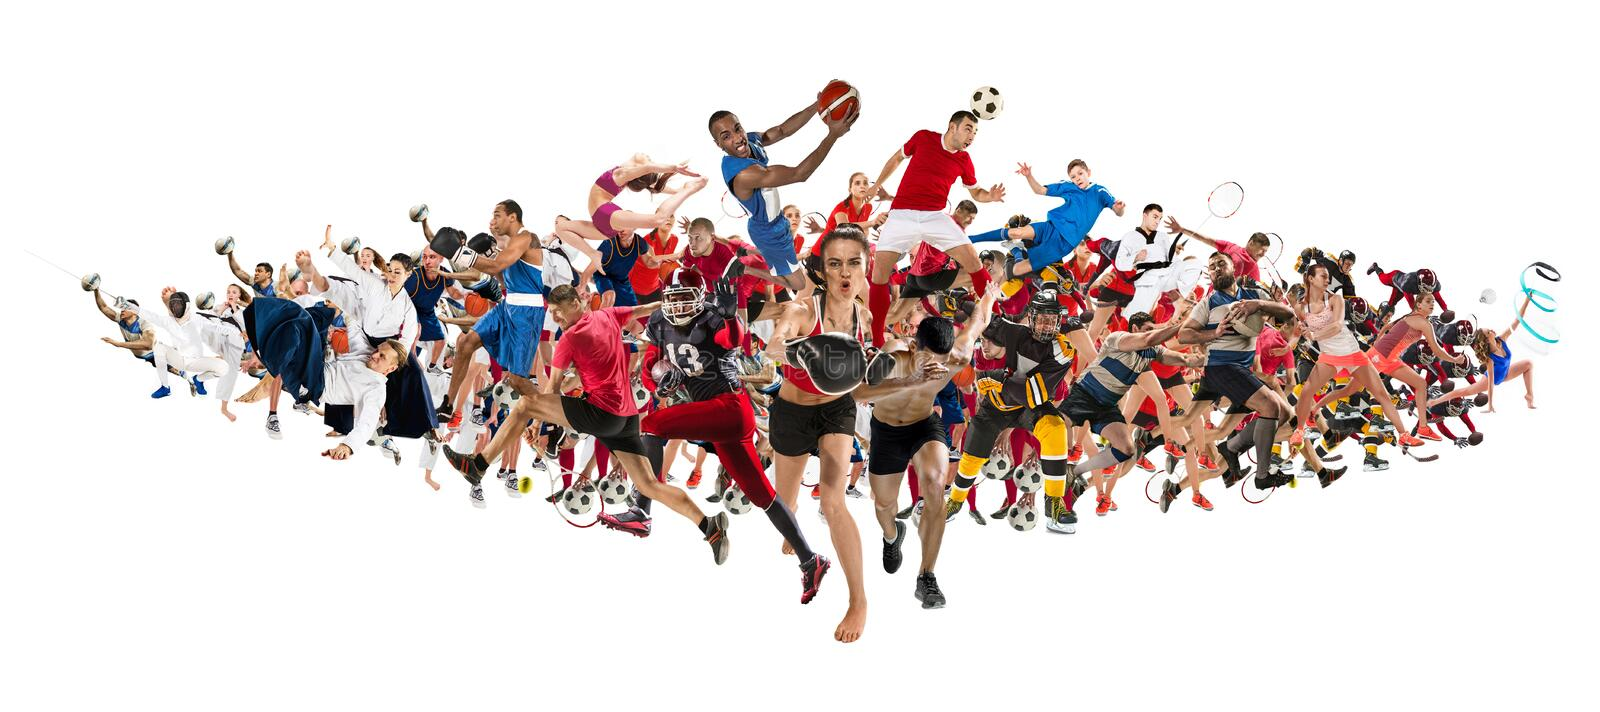 Folâtrez le collage au sujet de kickboxing, le football, football américain, basket-ball, hockey sur glace, badminton, le Taekwon photos libres de droits